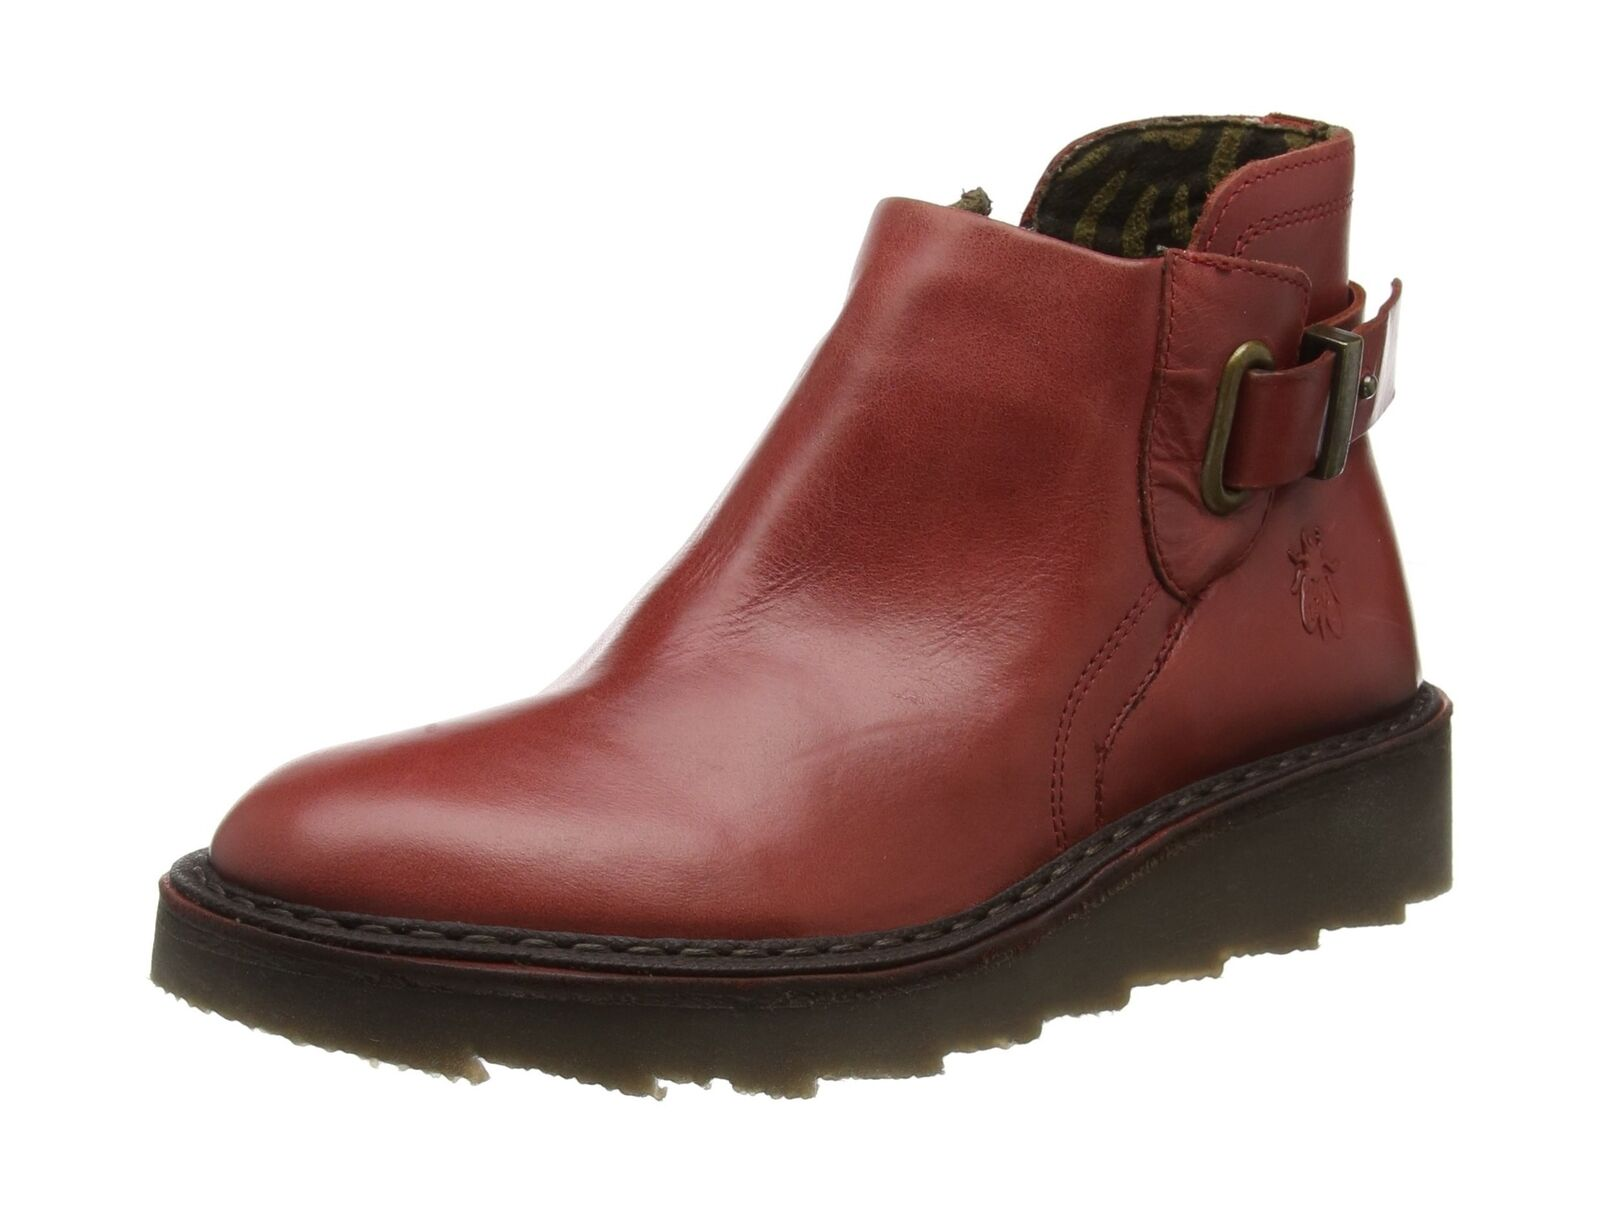 Fly London Women's Amie954fly Desert Boots Red (Red) 4 UK